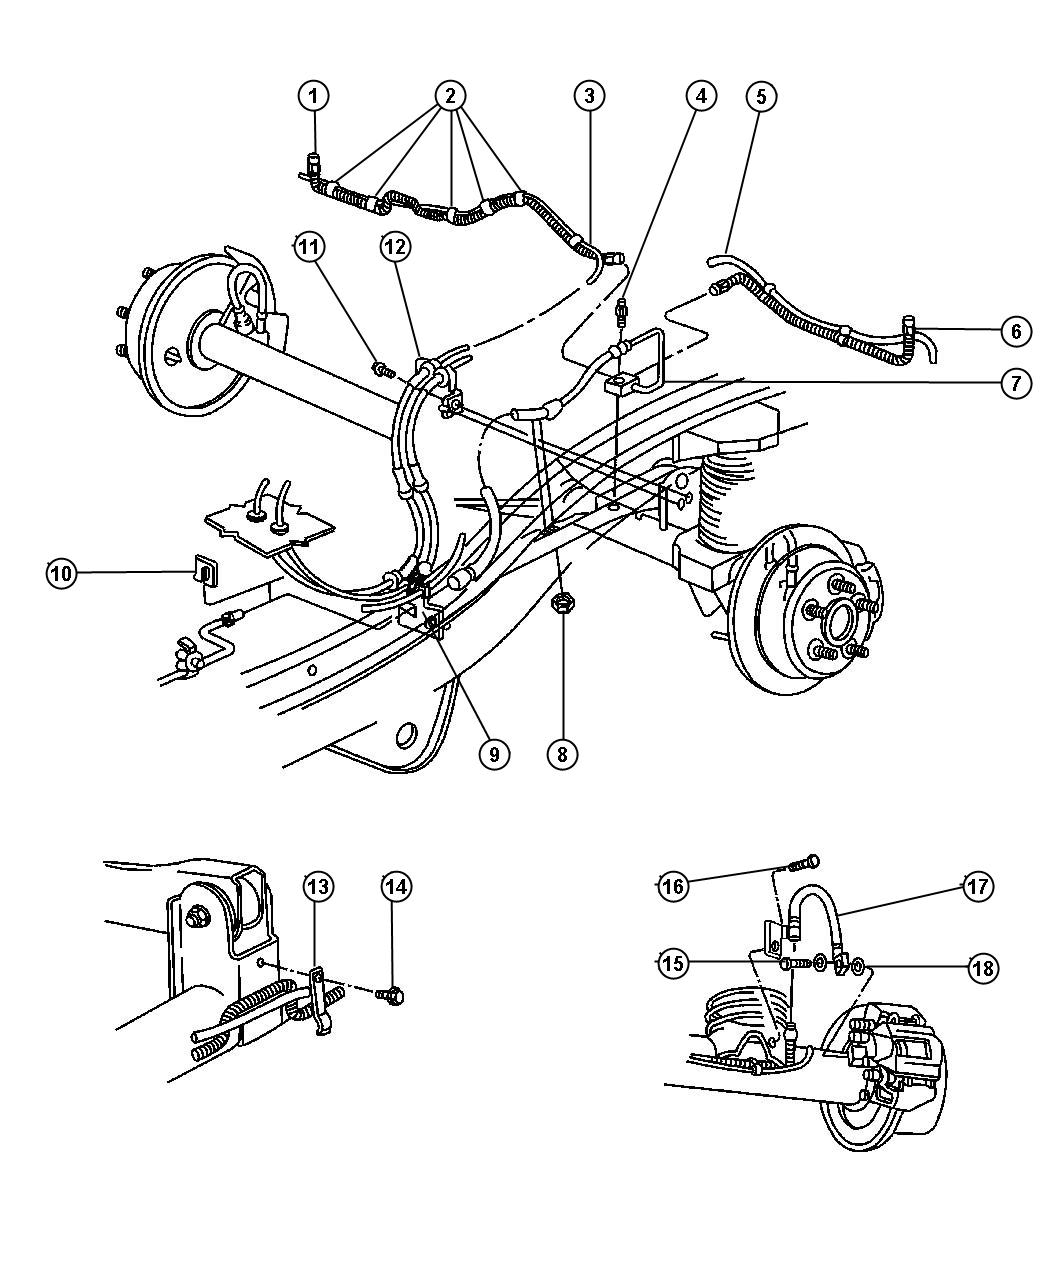 wiring diagram for 1998 jeep grand cherokee with Showassembly on 95 Dodge Dakota Blower Motor Wiring Diagram in addition Jeep Cherokee 1997 2001 Fuse Box Diagram 398208 in addition 3sibl Heater Blower Motor Runs High Speed Switch Key Off as well 2001 Ford Explorer Sport Trac Fuel Pump Relay F6713922584f3c4d together with 1998 528i  lifier Wiring Diagram.